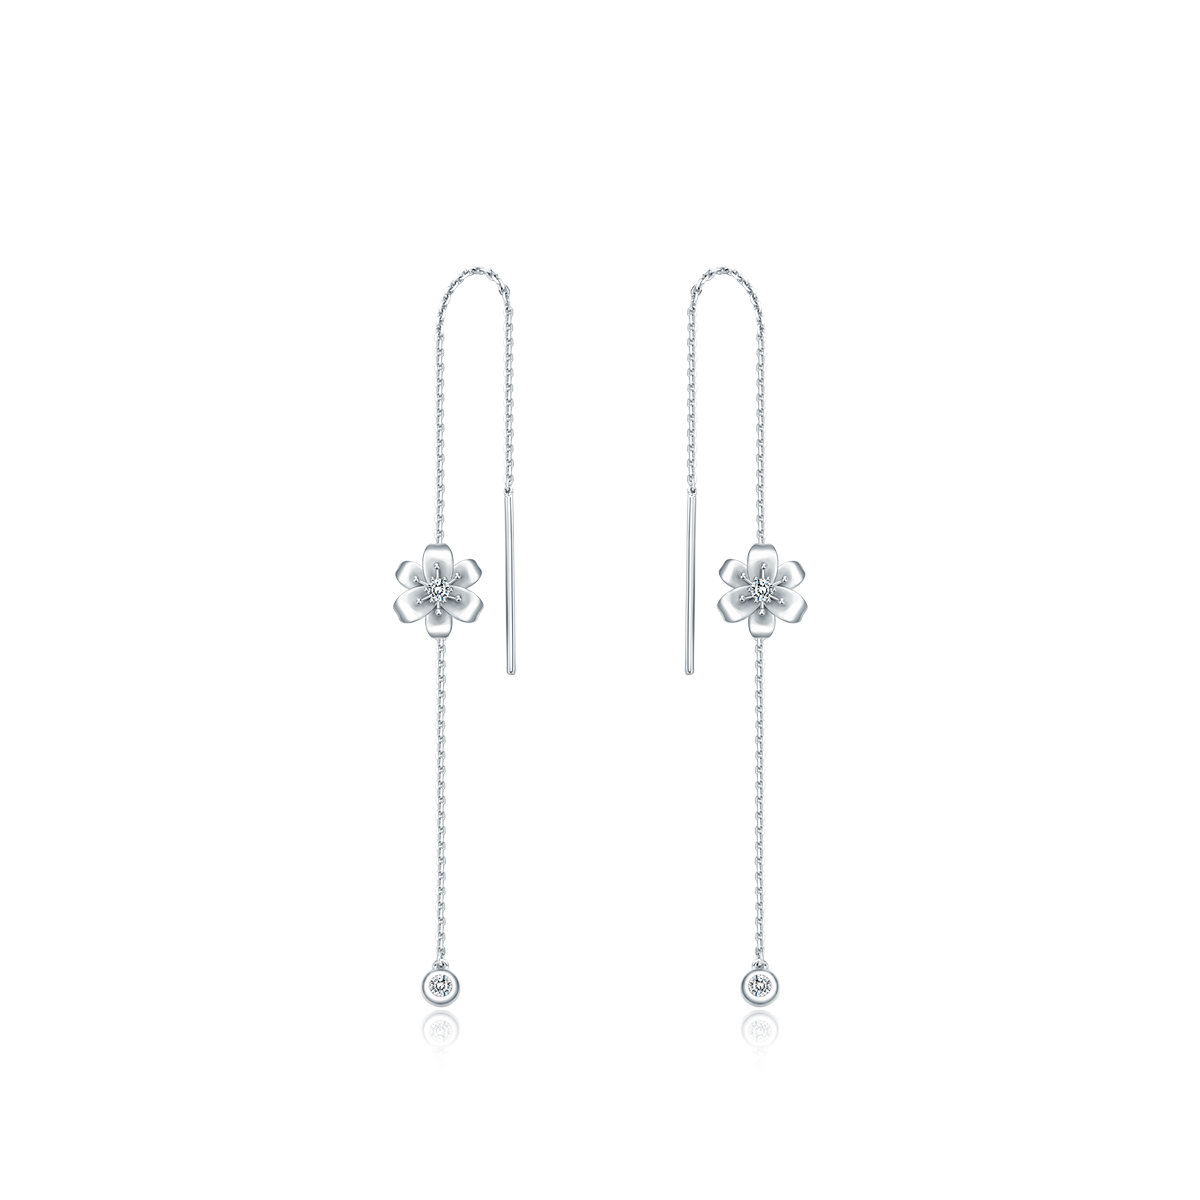 Love in Petals Collection: 18K/750 White Gold Diamond Earrings